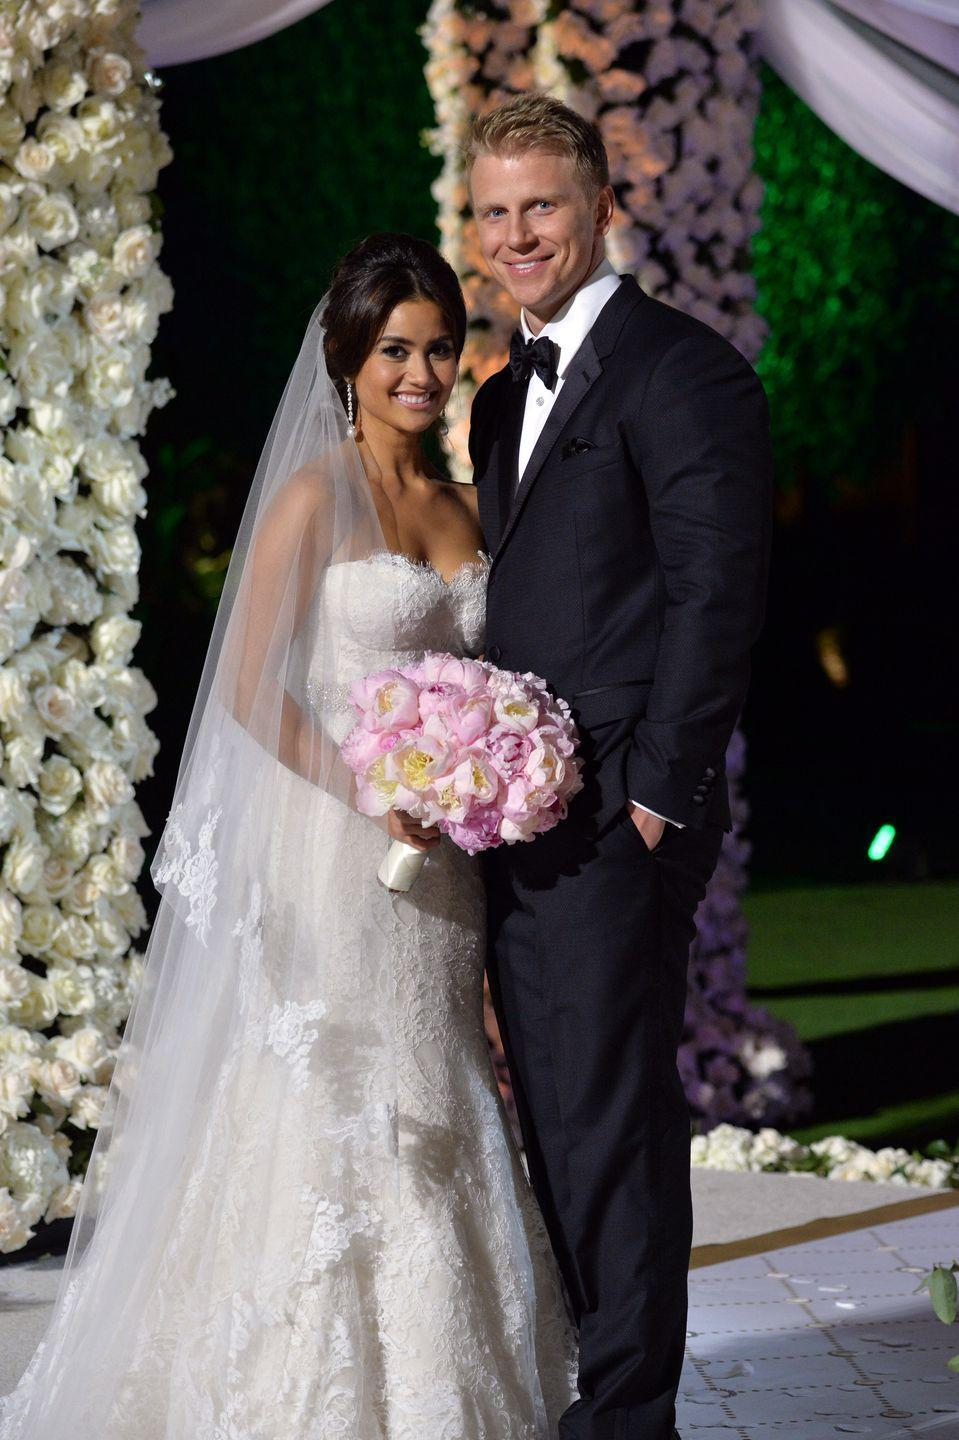 "<p>One of Bachelor nation's favorite couples tied the knot in a made-for-TV ceremony estimated to <a href=""https://ew.com/article/2014/01/27/the-bachelor-wedding-catherine-giudici-sean-lowe-fashion/#:~:text=(Life%20%26%20Style%20estimates%20the%20cost,and%20Ryan%20Sutter%20in%202003.)"" rel=""nofollow noopener"" target=""_blank"" data-ylk=""slk:cost around"" class=""link rapid-noclick-resp"">cost around</a> $250,000. Lucky for them, they didn't have to pay a dime. ABC covered it all! </p>"